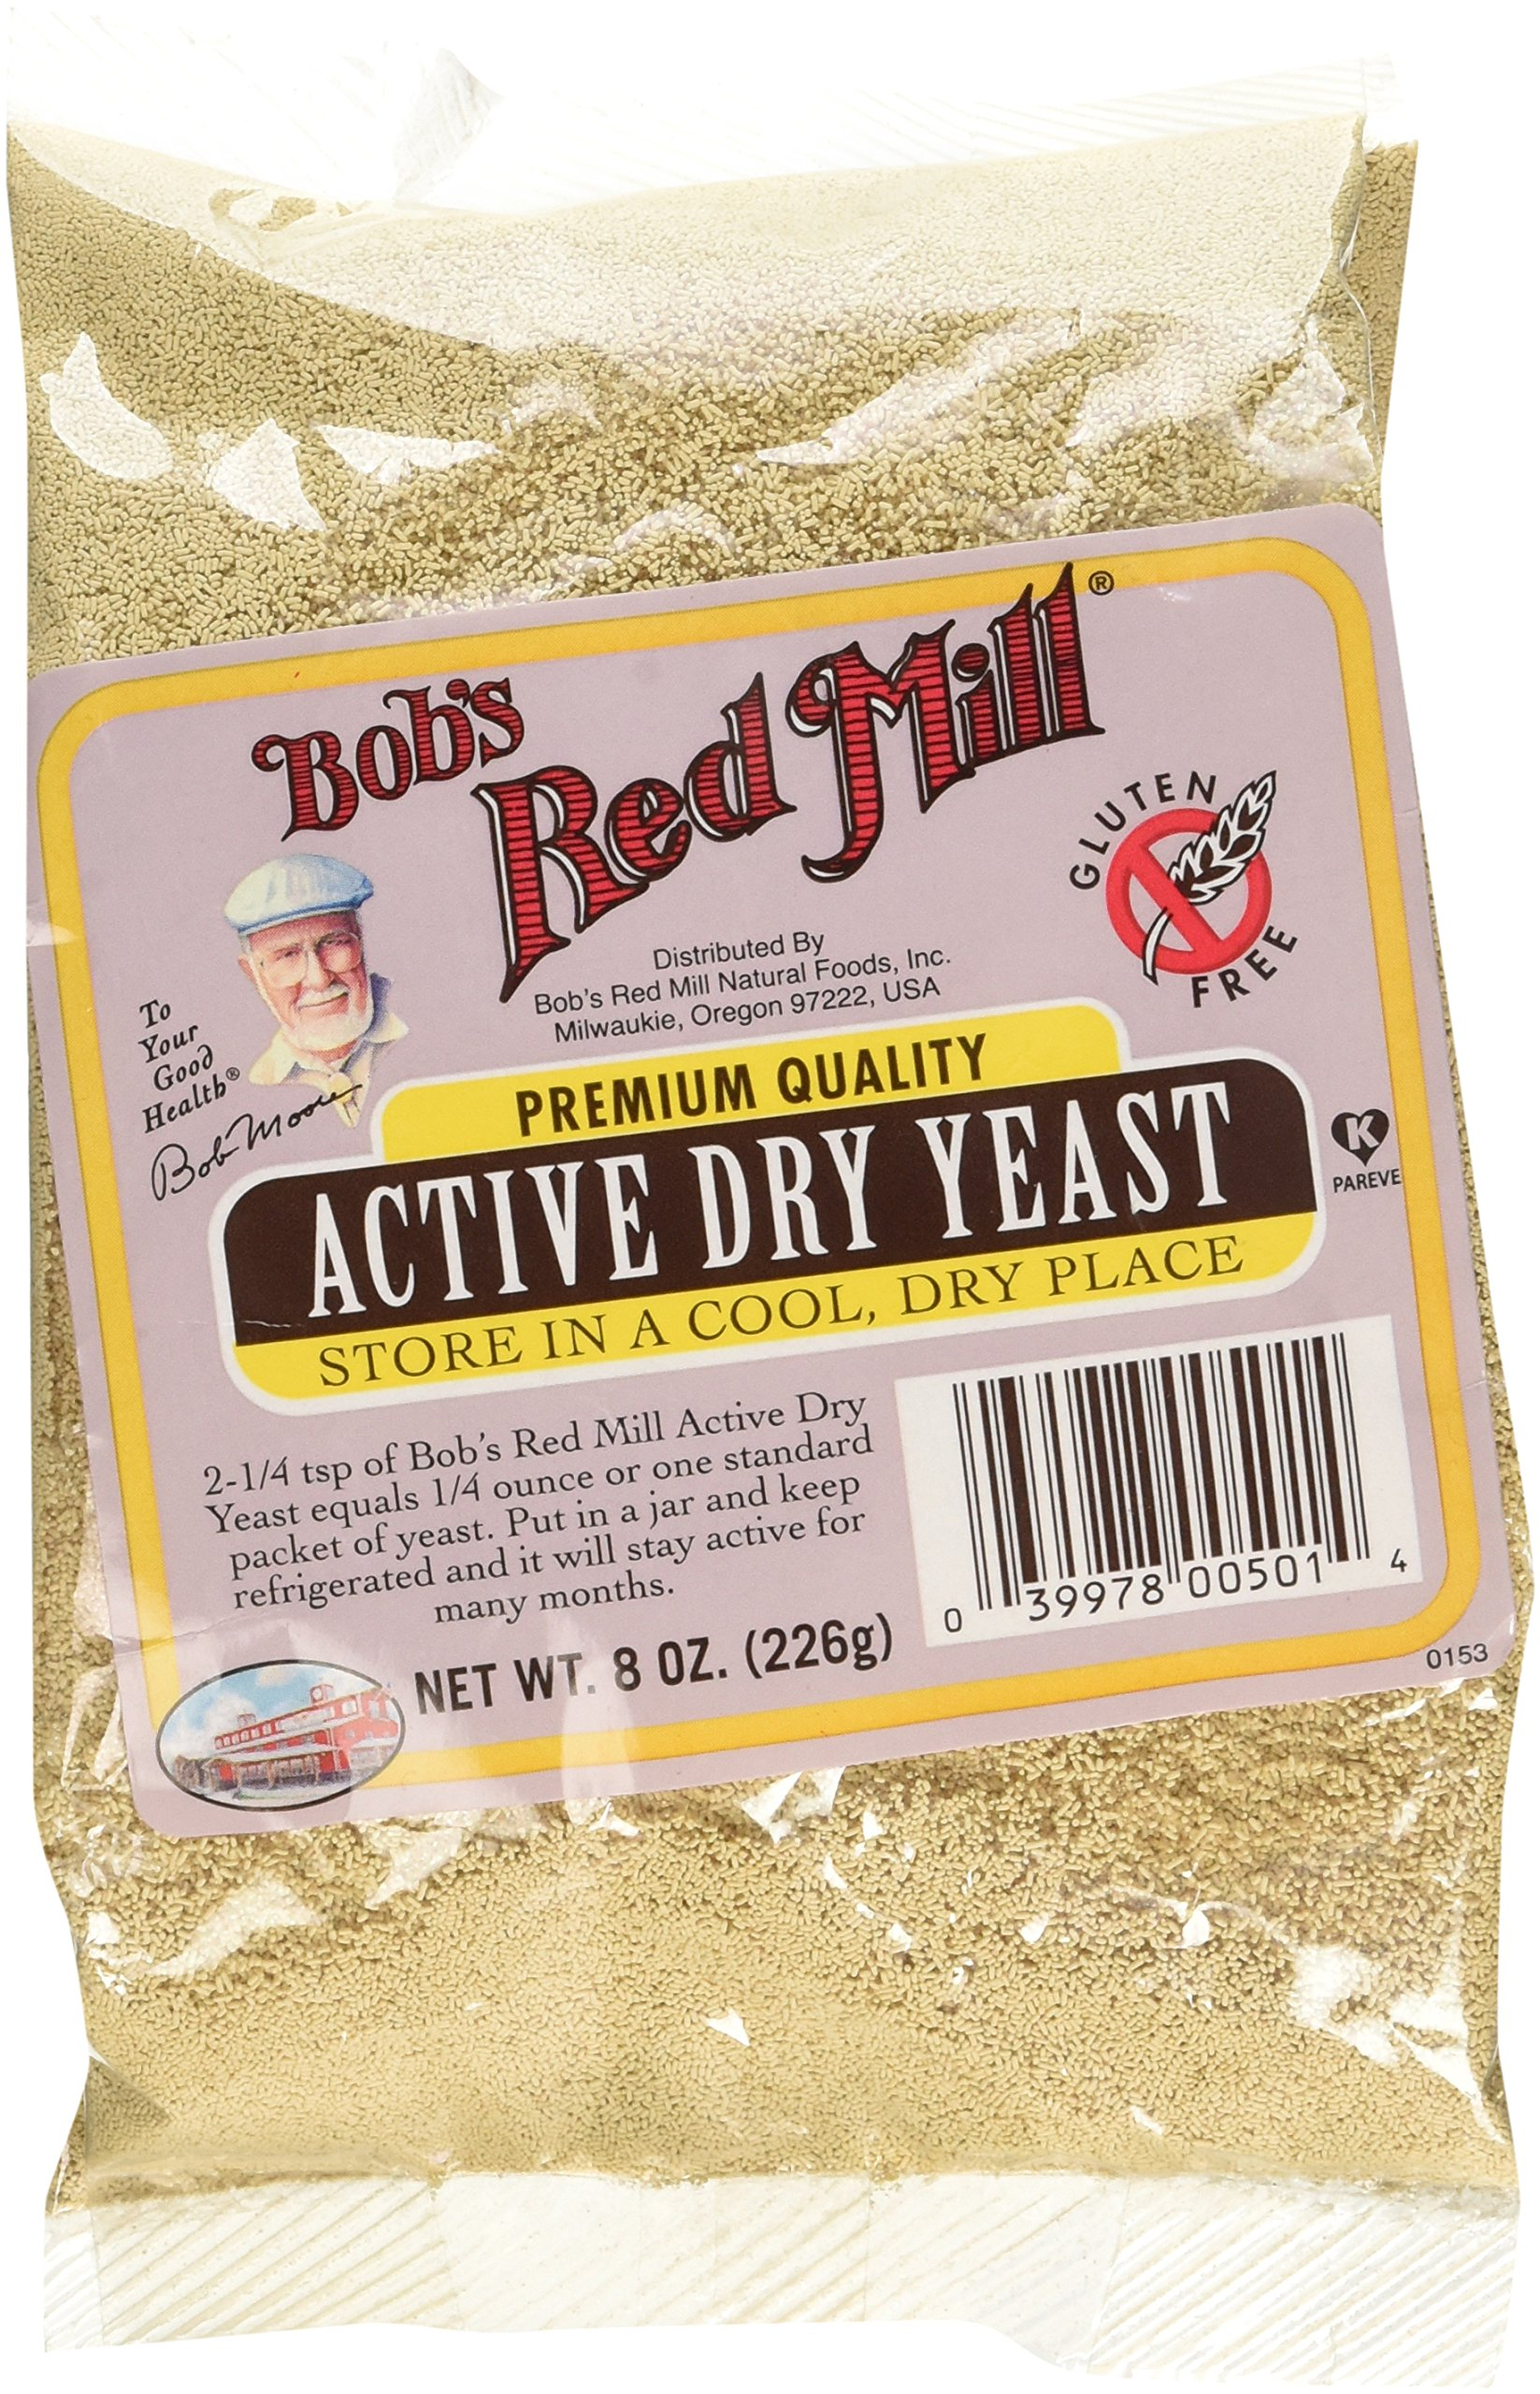 1 package of dry yeast equals